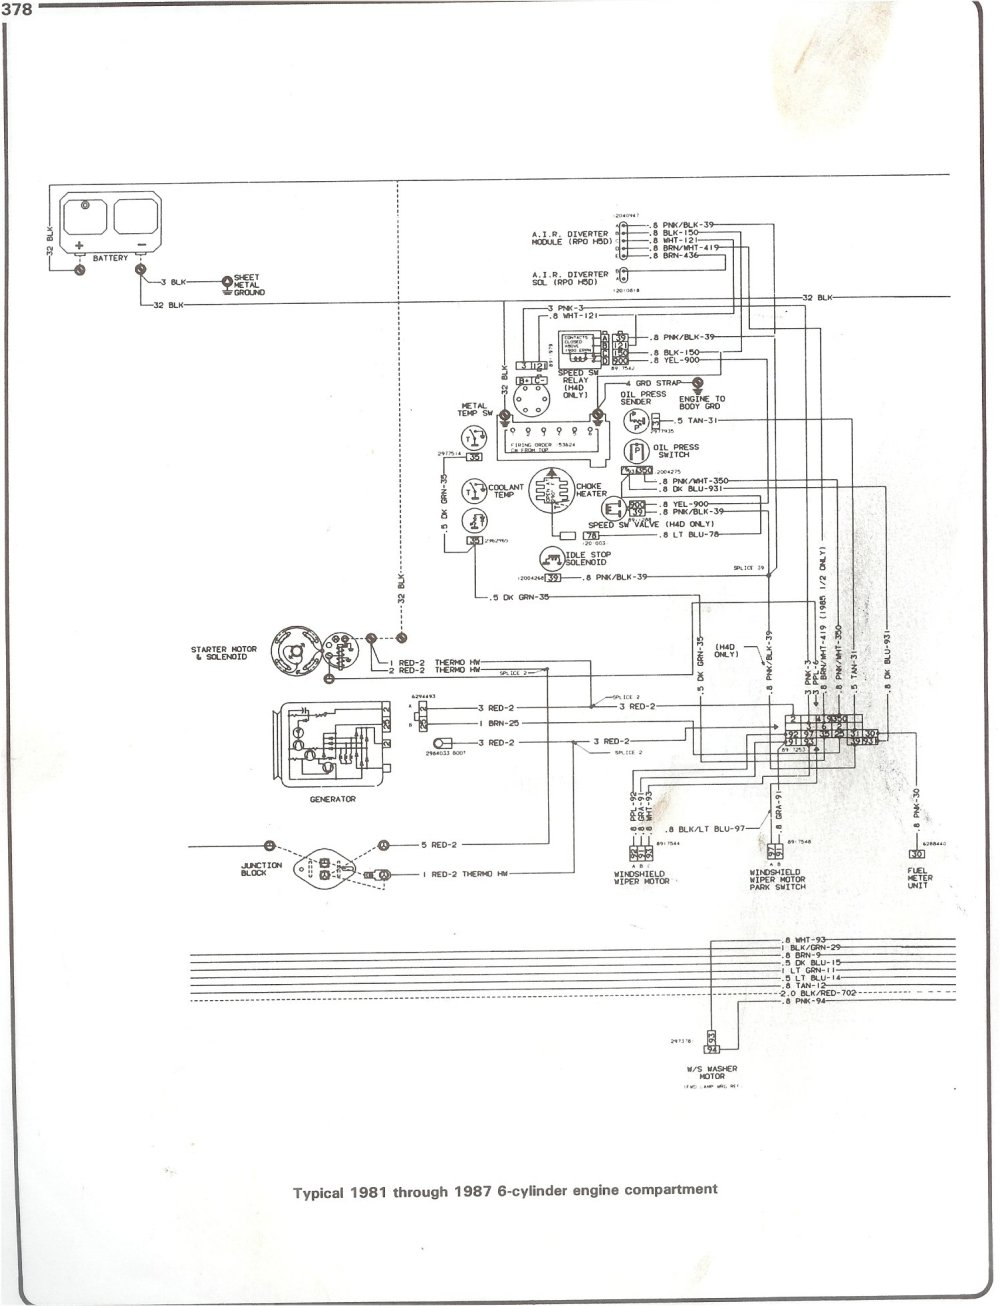 medium resolution of complete 73 87 wiring diagrams 1980 chevy truck ignition wiring diagram 1980 chevy truck ignition wiring diagram